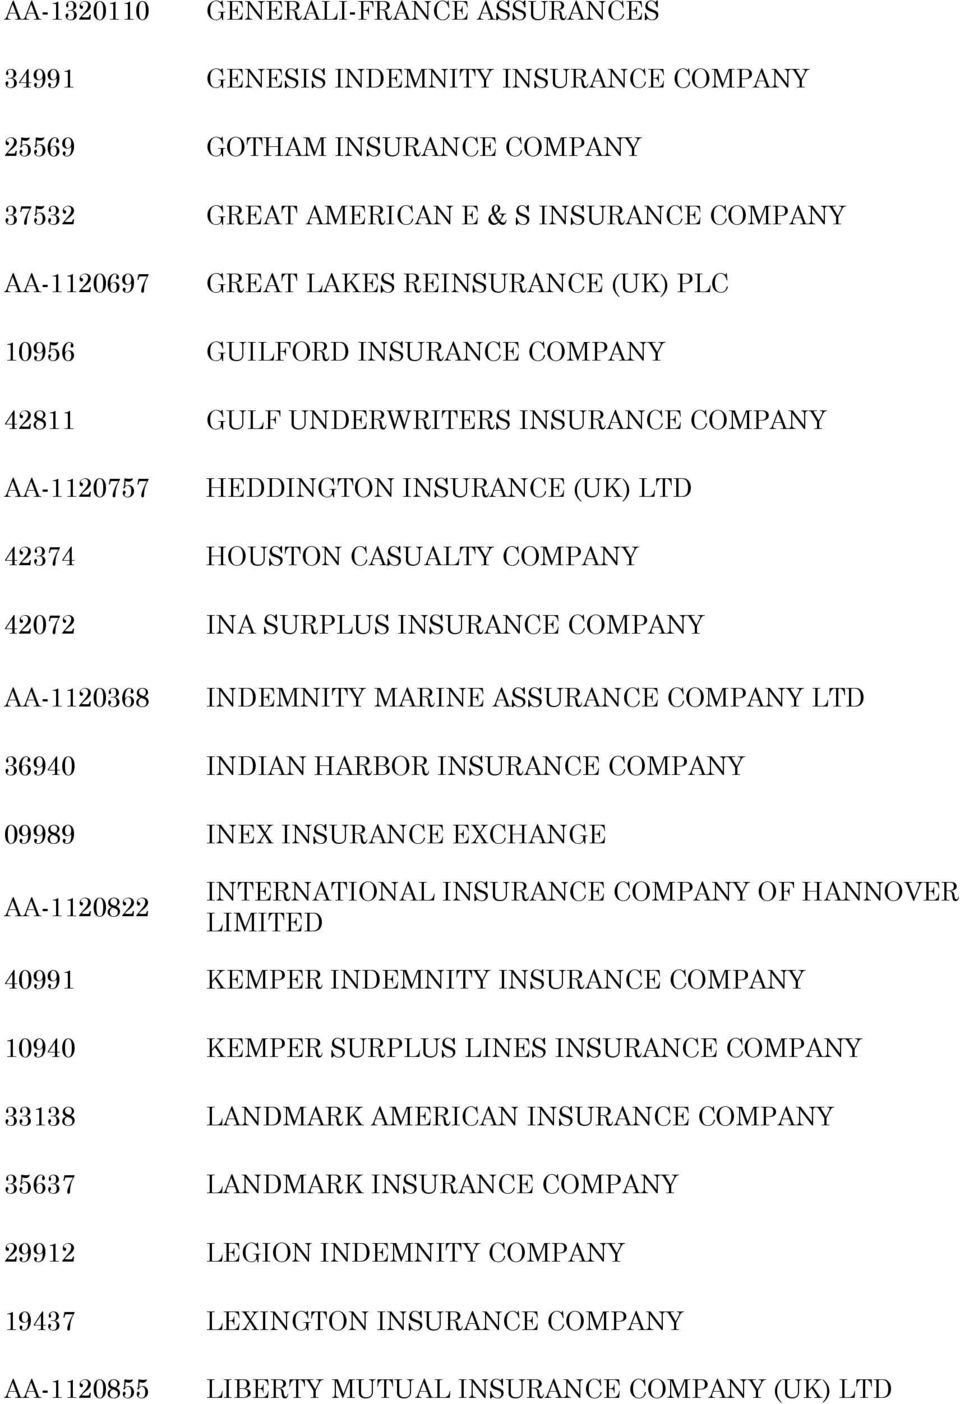 INDEMNITY MARINE ASSURANCE COMPANY LTD 36940 INDIAN HARBOR INSURANCE COMPANY 09989 INEX INSURANCE EXCHANGE AA-1120822 INTERNATIONAL INSURANCE COMPANY OF HANNOVER LIMITED 40991 KEMPER INDEMNITY